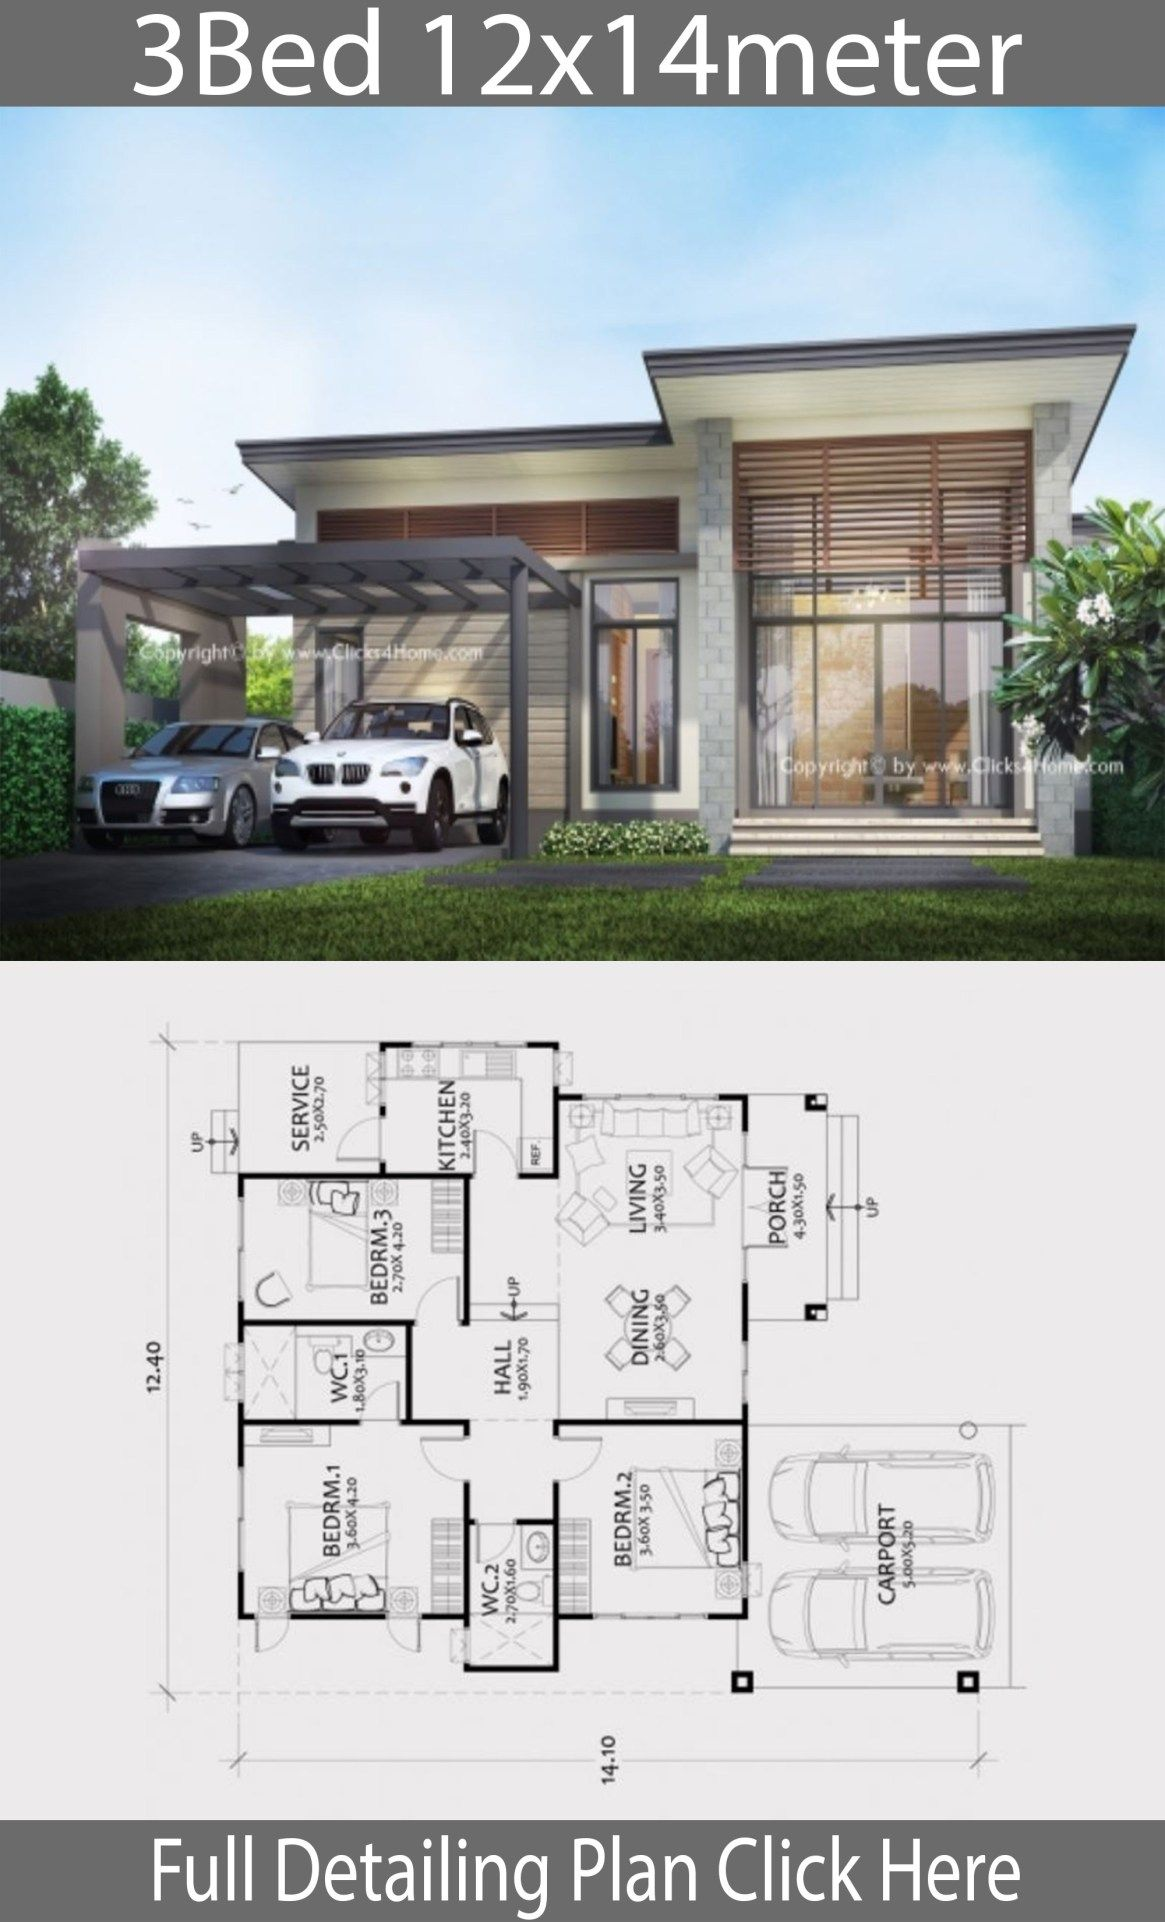 Home Design Plan 12x14m With 3 Bedrooms Home Design With Plansearch Small Modern House Plans Model House Plan Modern House Plans